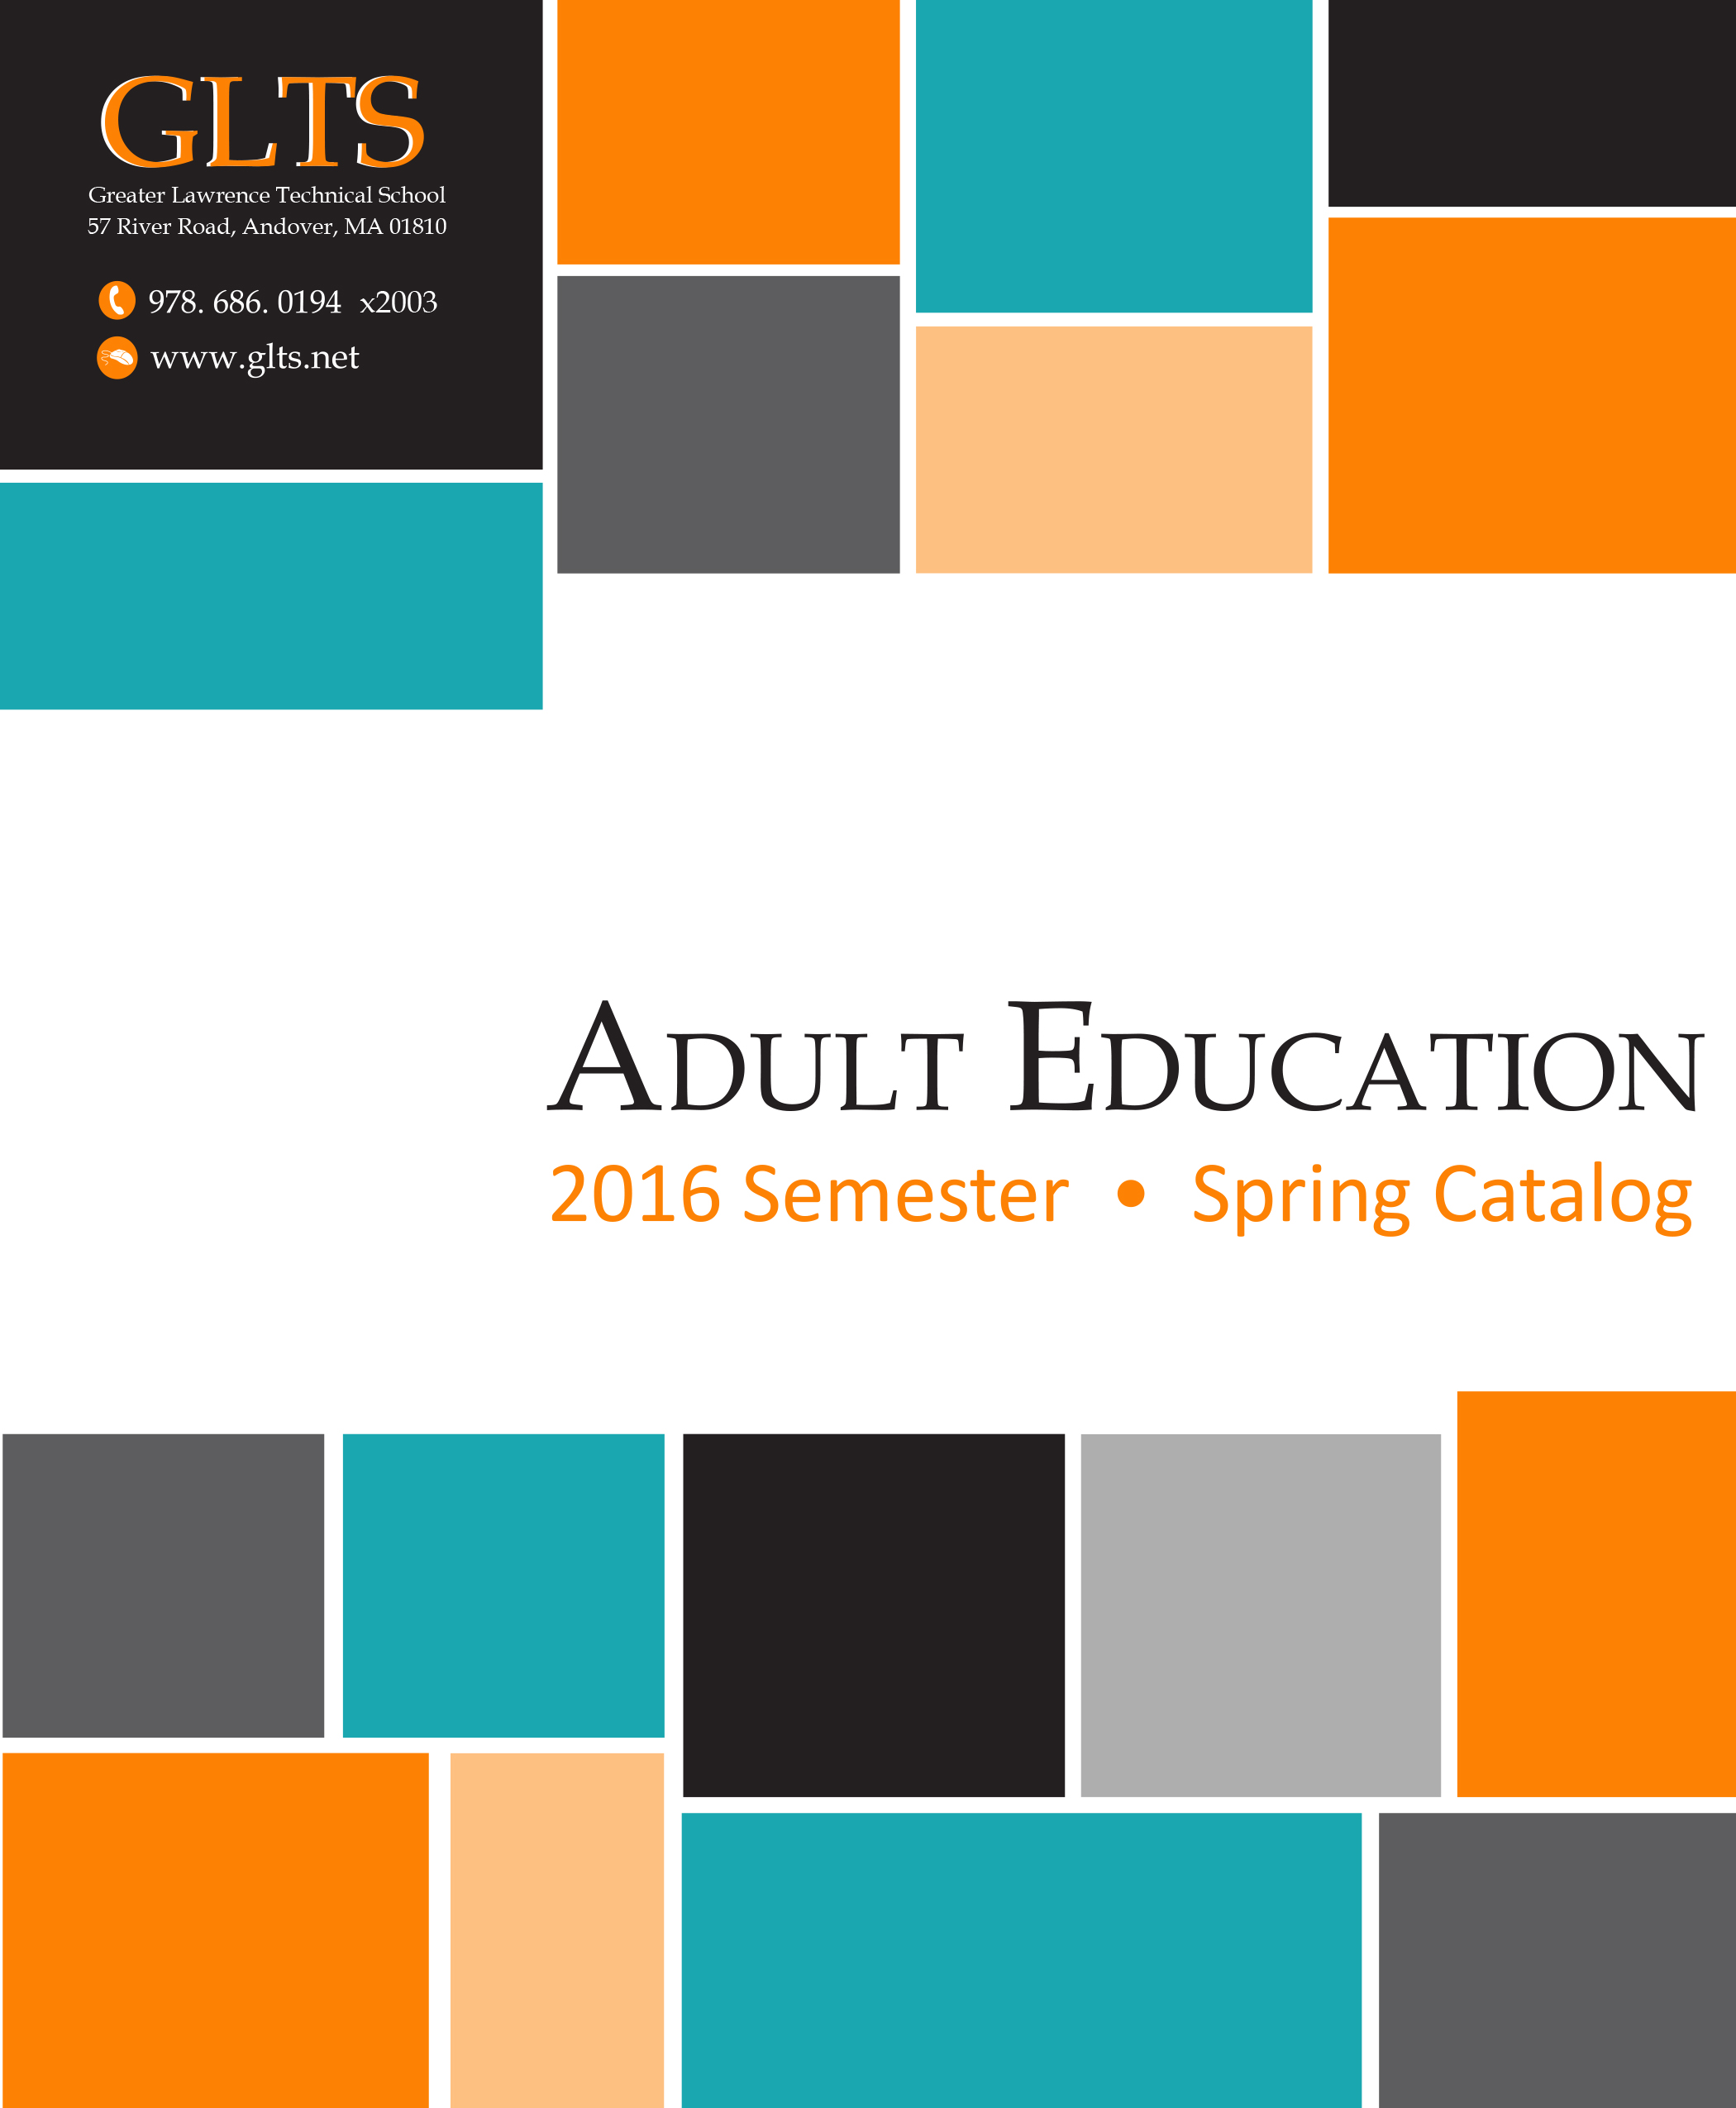 evening greater adult lawrence courses regional